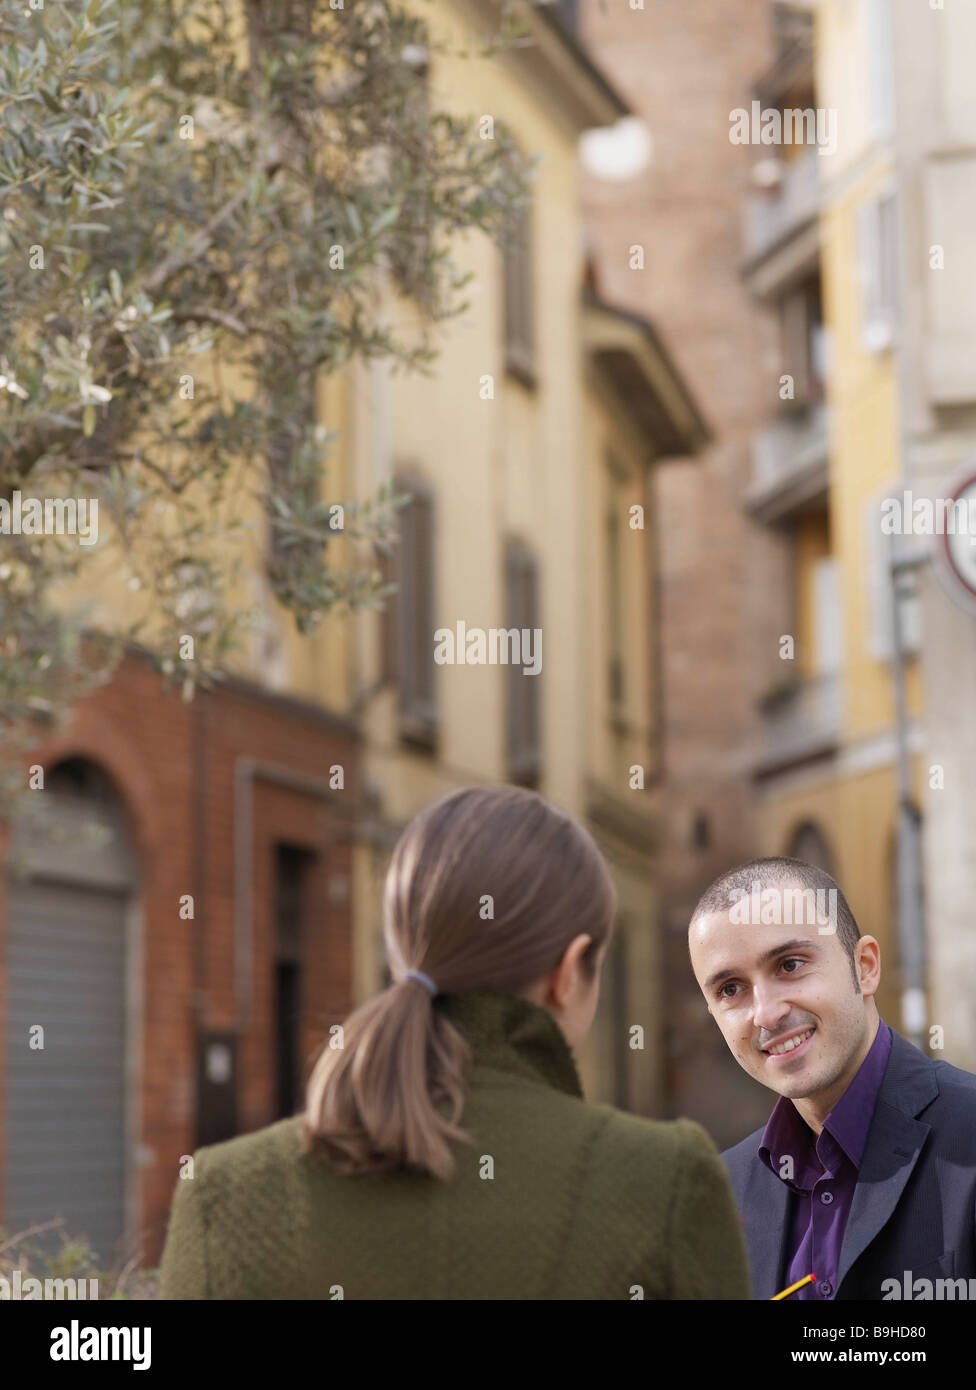 Man and woman in European street - Stock Image